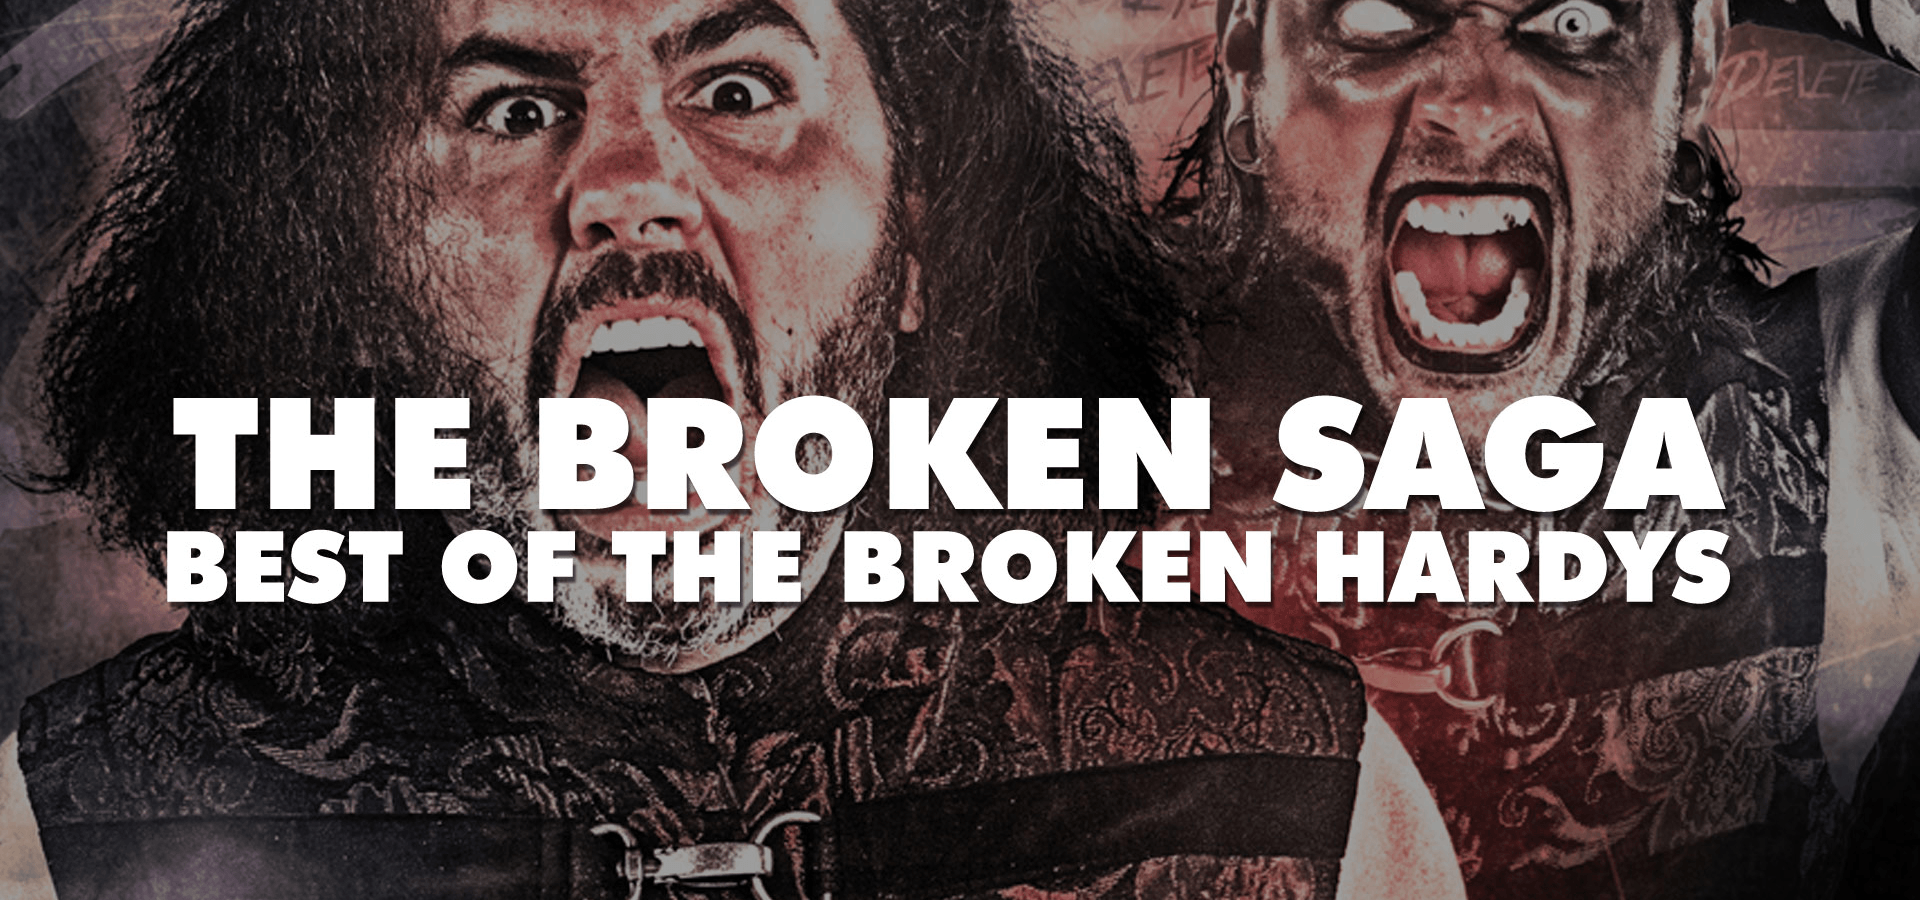 The Broken Saga: Best of the Broken Hardys